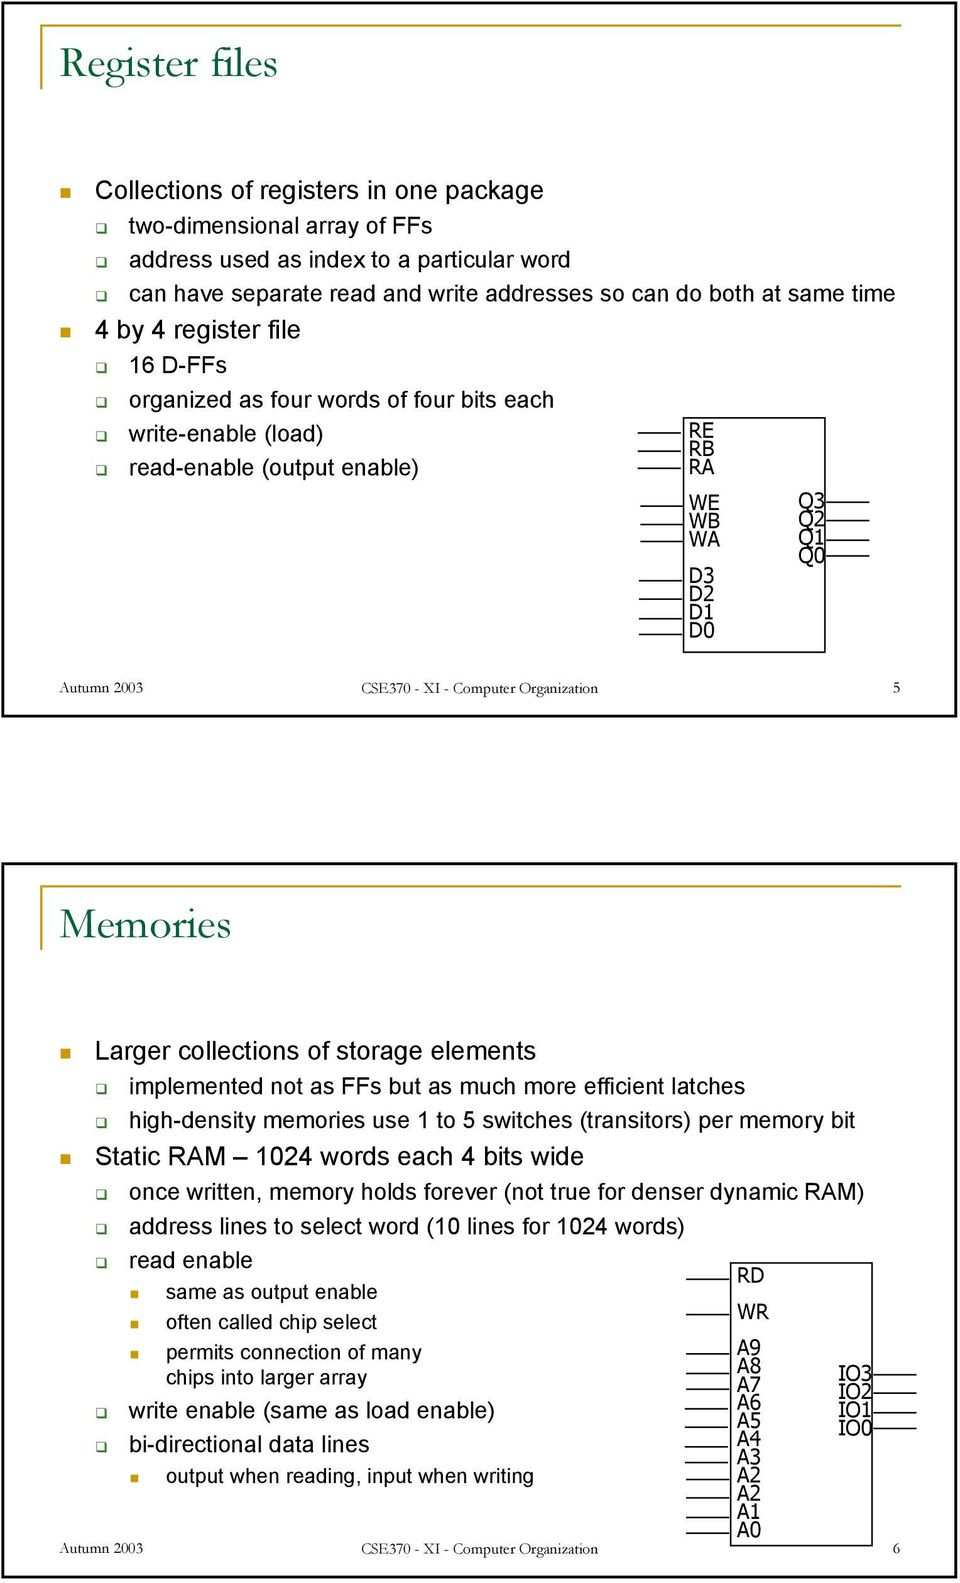 Organization 5 Memories Larger collections of storage elements implemented not as FFs but as much more efficient latches high-density memories use 1 to 5 switches (transitors) per memory bit Static